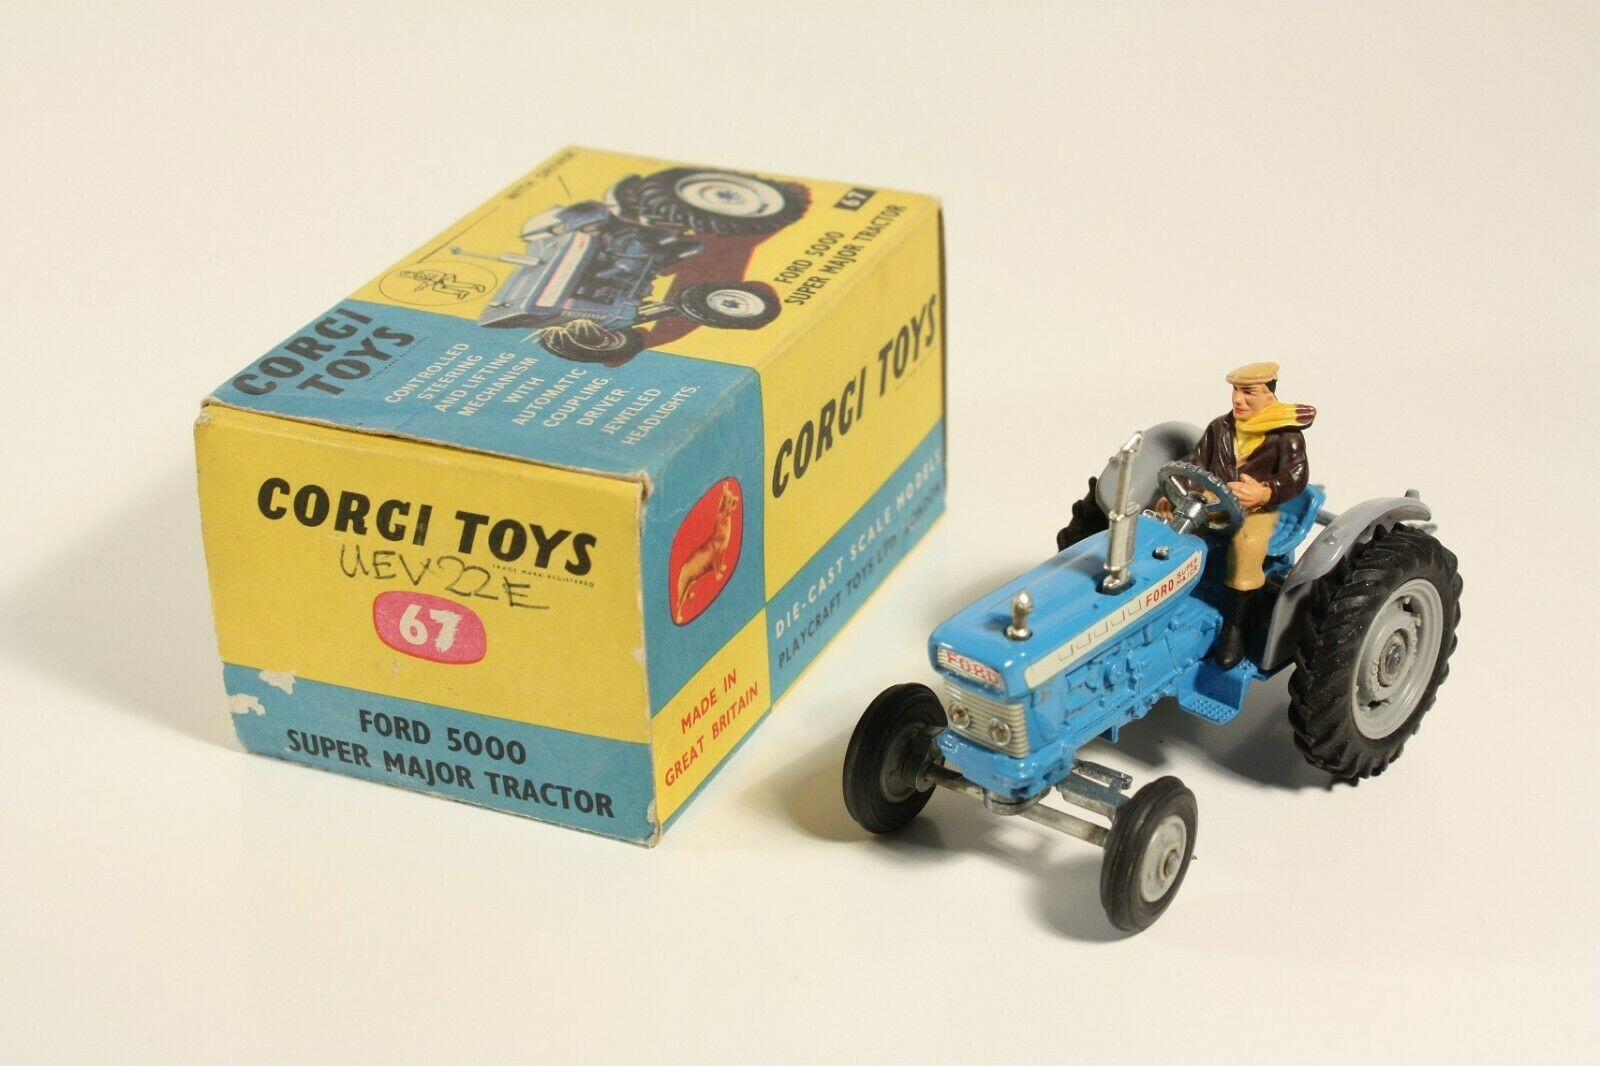 MINT TRACTOR, MAJOR SUPER 5000 Ford 67, Toys IN Corgi ab2299